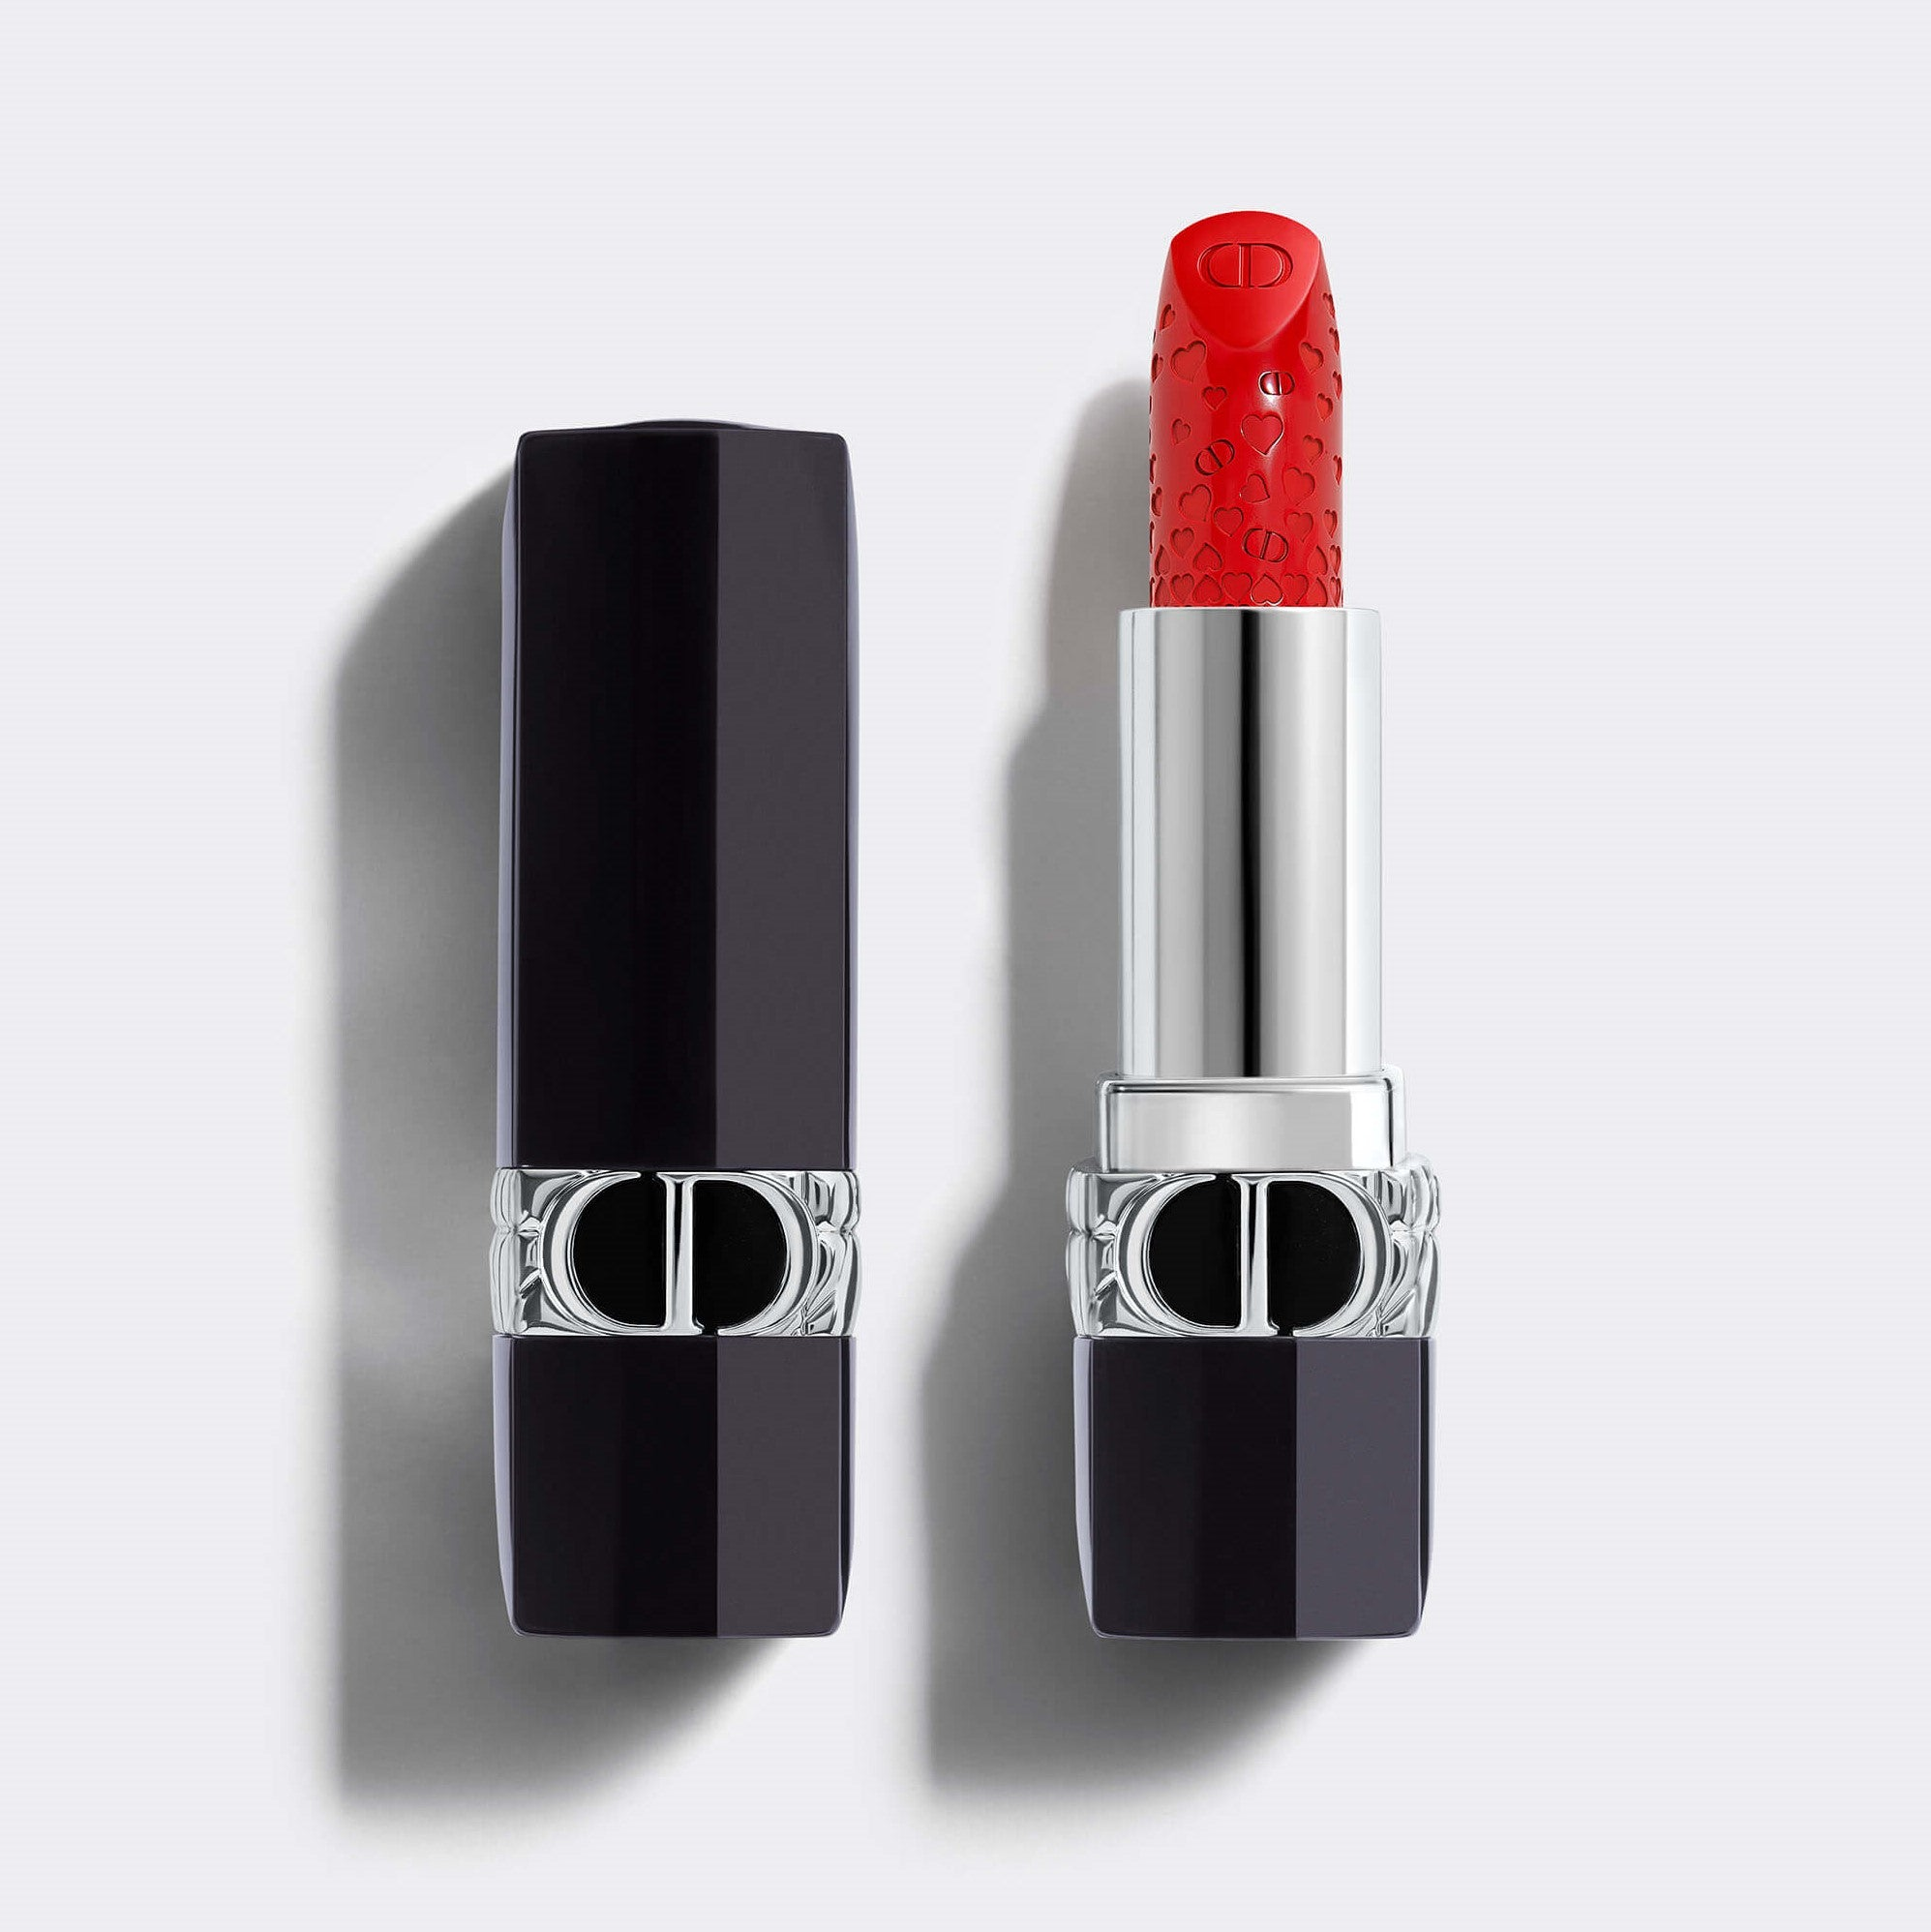 ROUGE DIOR VALENTINES' DAY LIMITED EDITION | Lipstick - Engraved Hearts Motif - Couture Color - Satin Finish - Floral Lip Care - Comfort and Long Wear